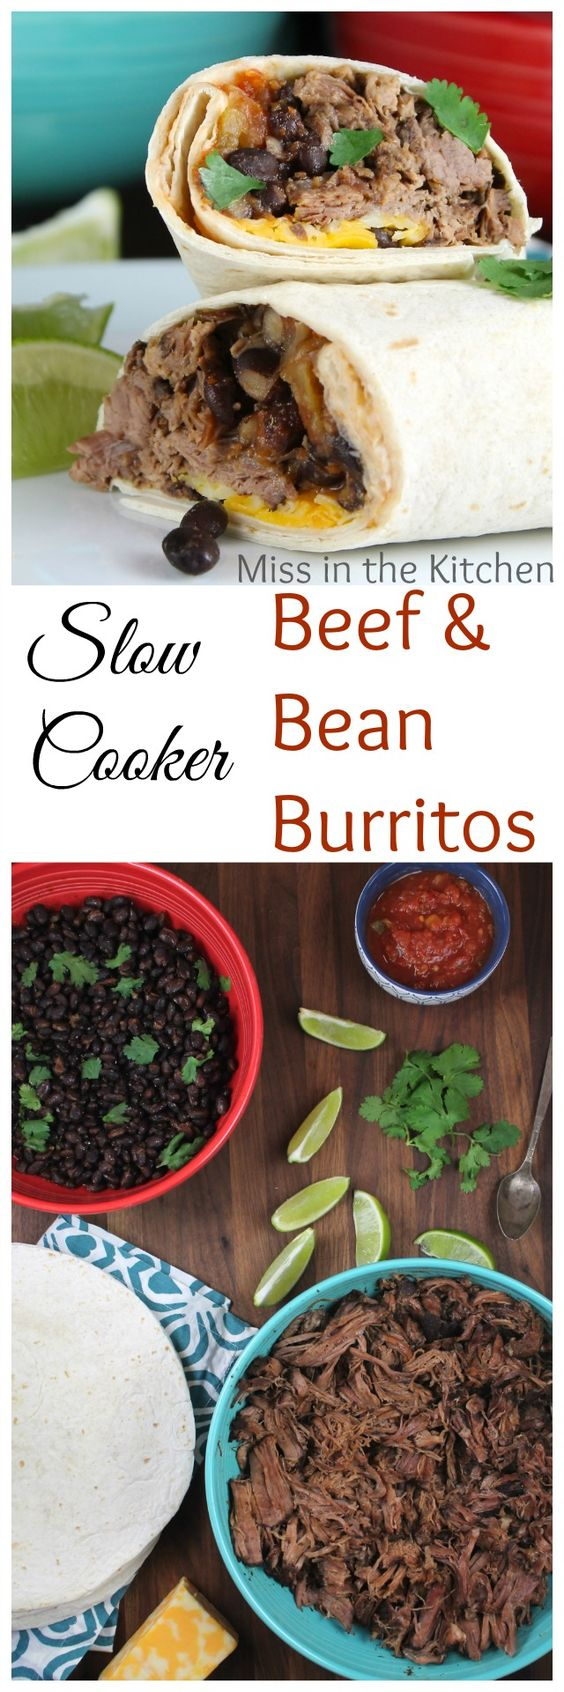 Slow Cooker Beef & Bean Burritos Recipe found at MissintheKitchen.com